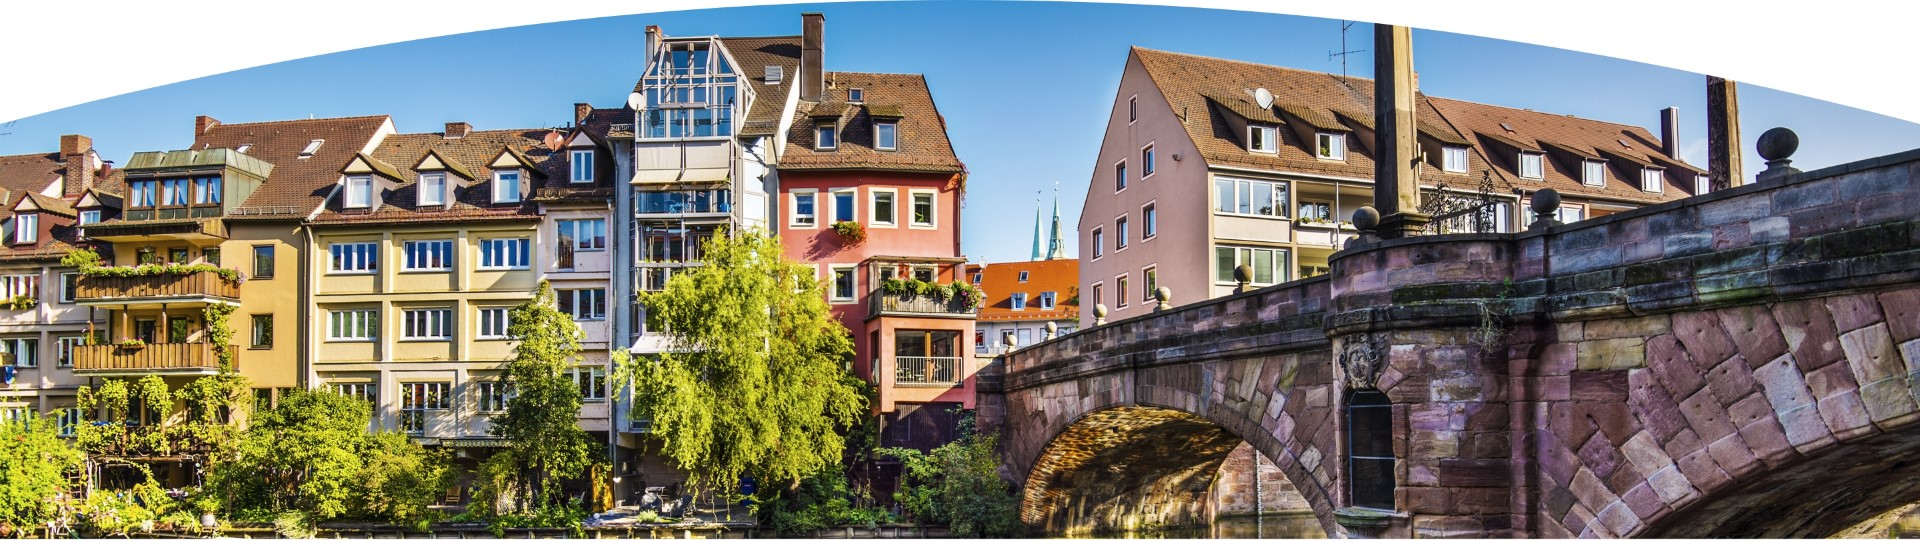 Old brigde with scenic riverside view in Nuernberg